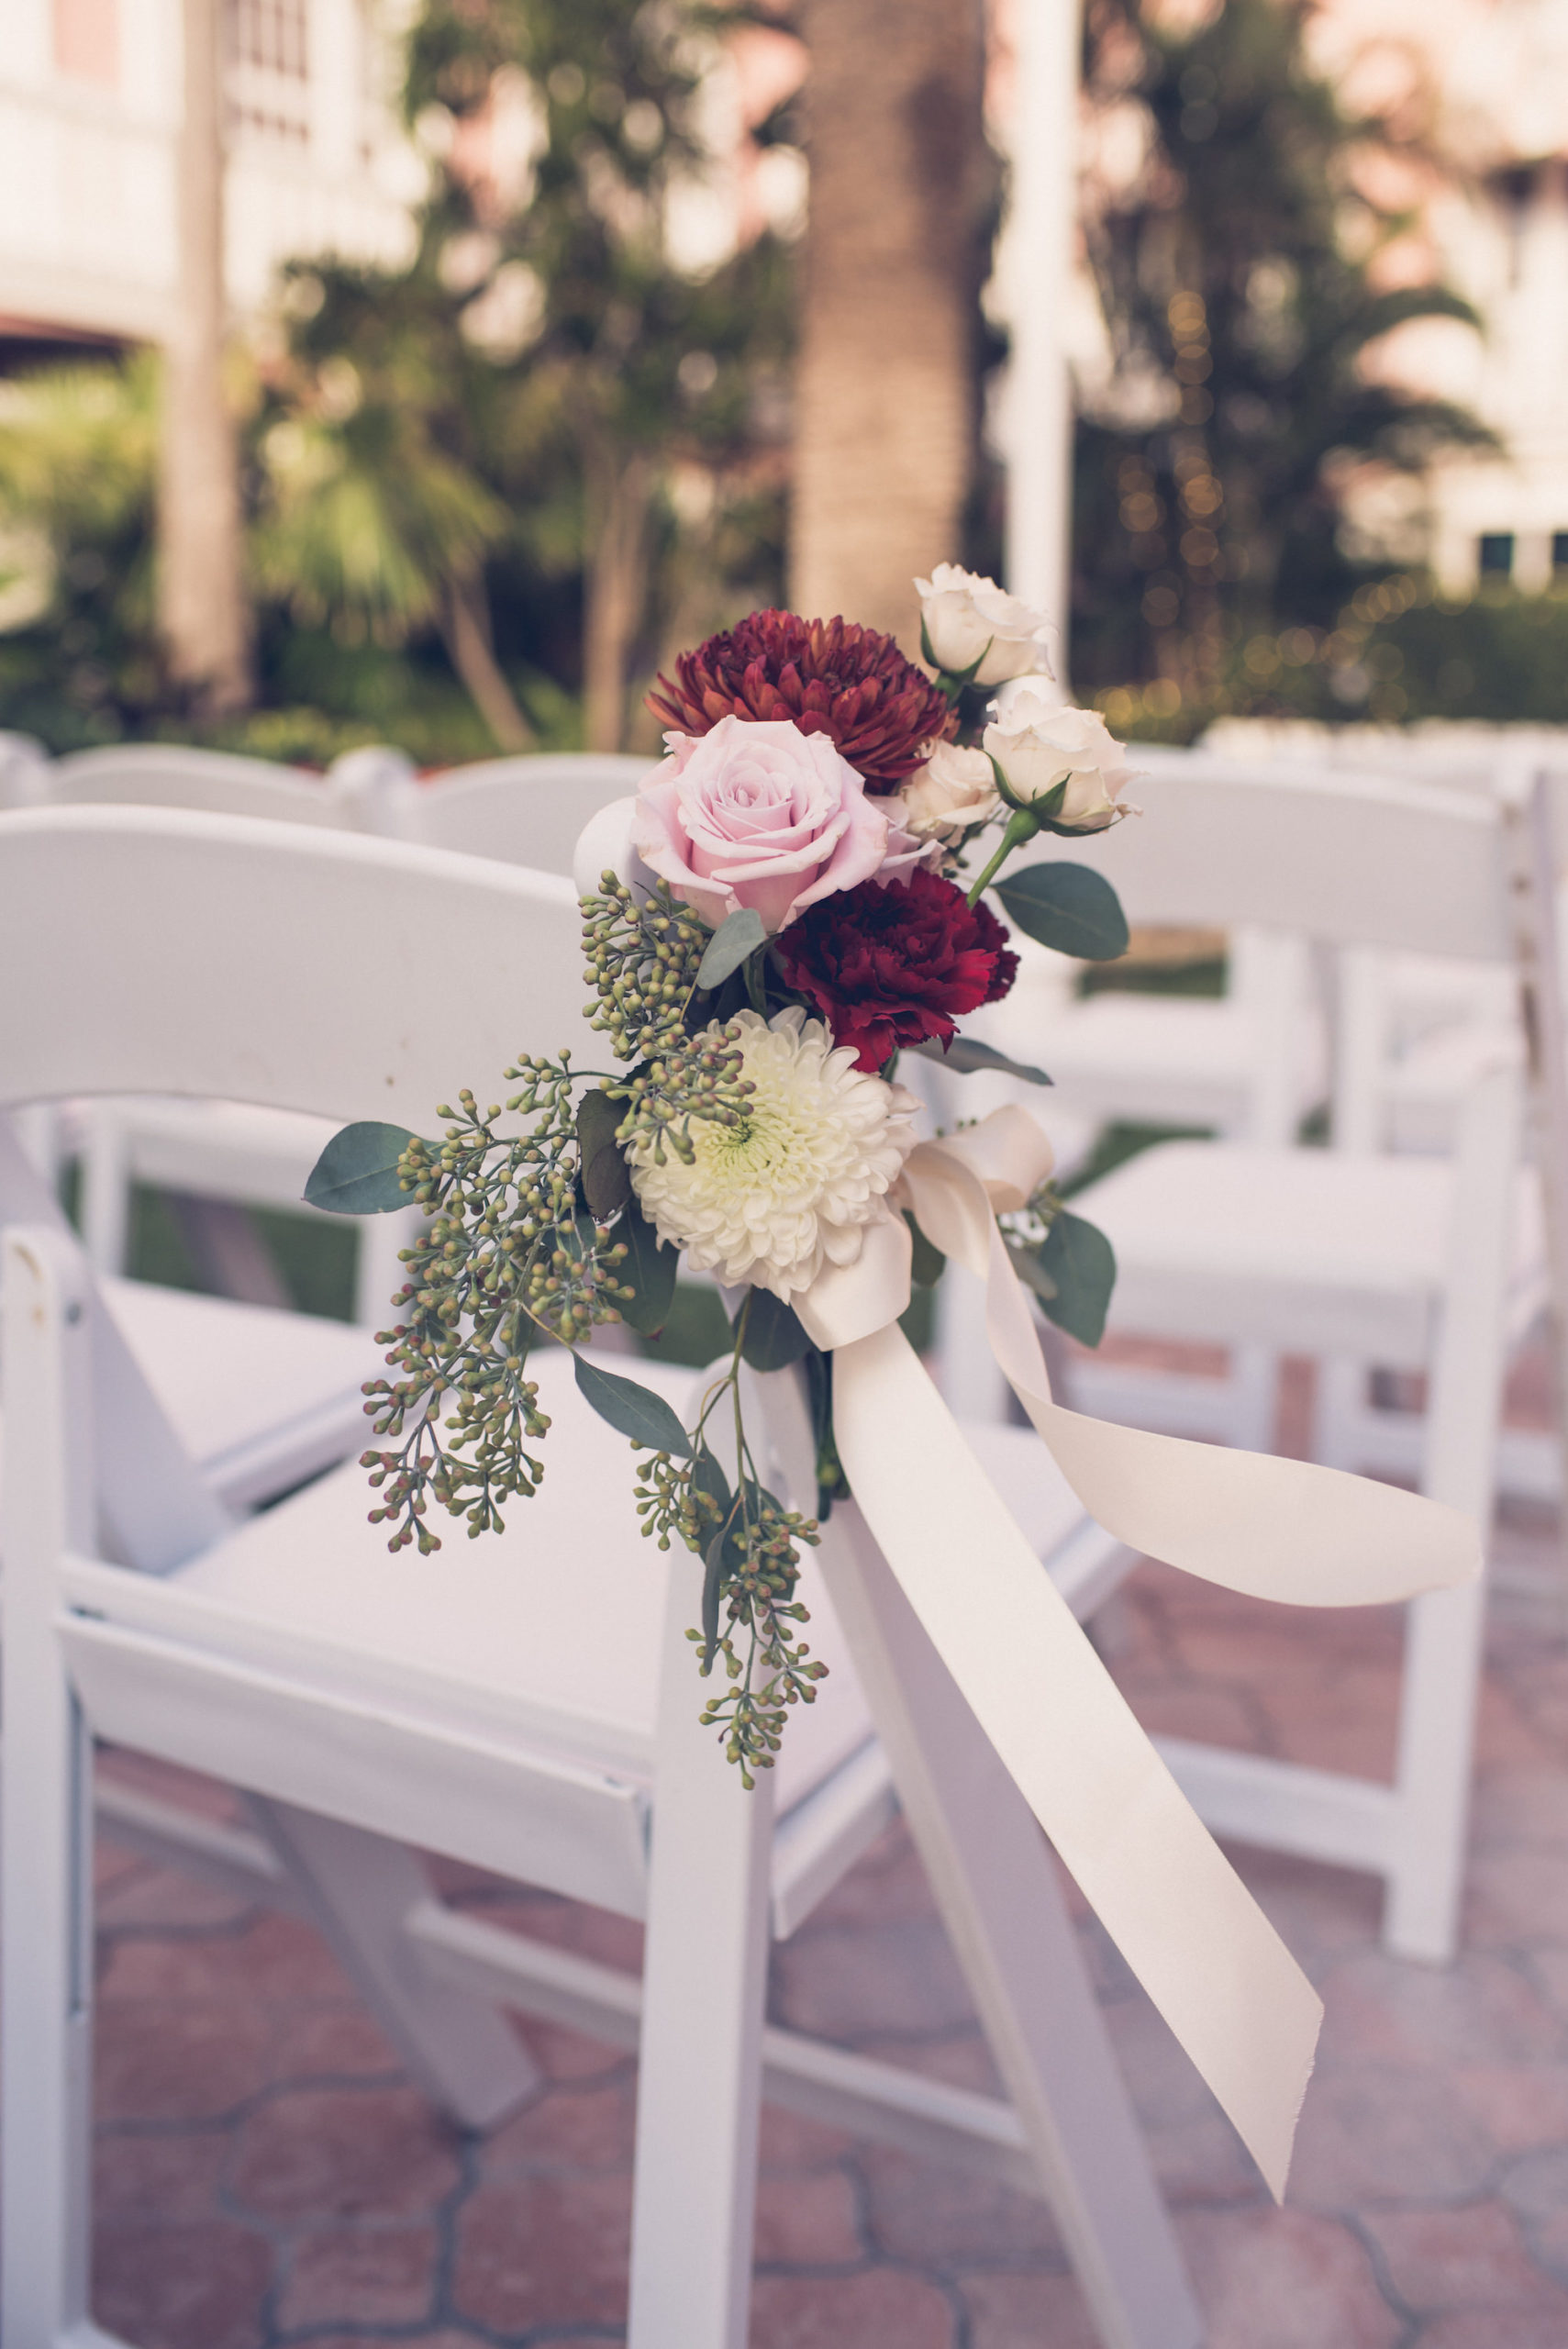 Simple Classic Wedding Ceremony Chair Decor, Blush Pink Roses, Ivory and Burgundy Flowers with Eucalyptus Leaves Arrangements | Wedding Photographer Luxe Light Images